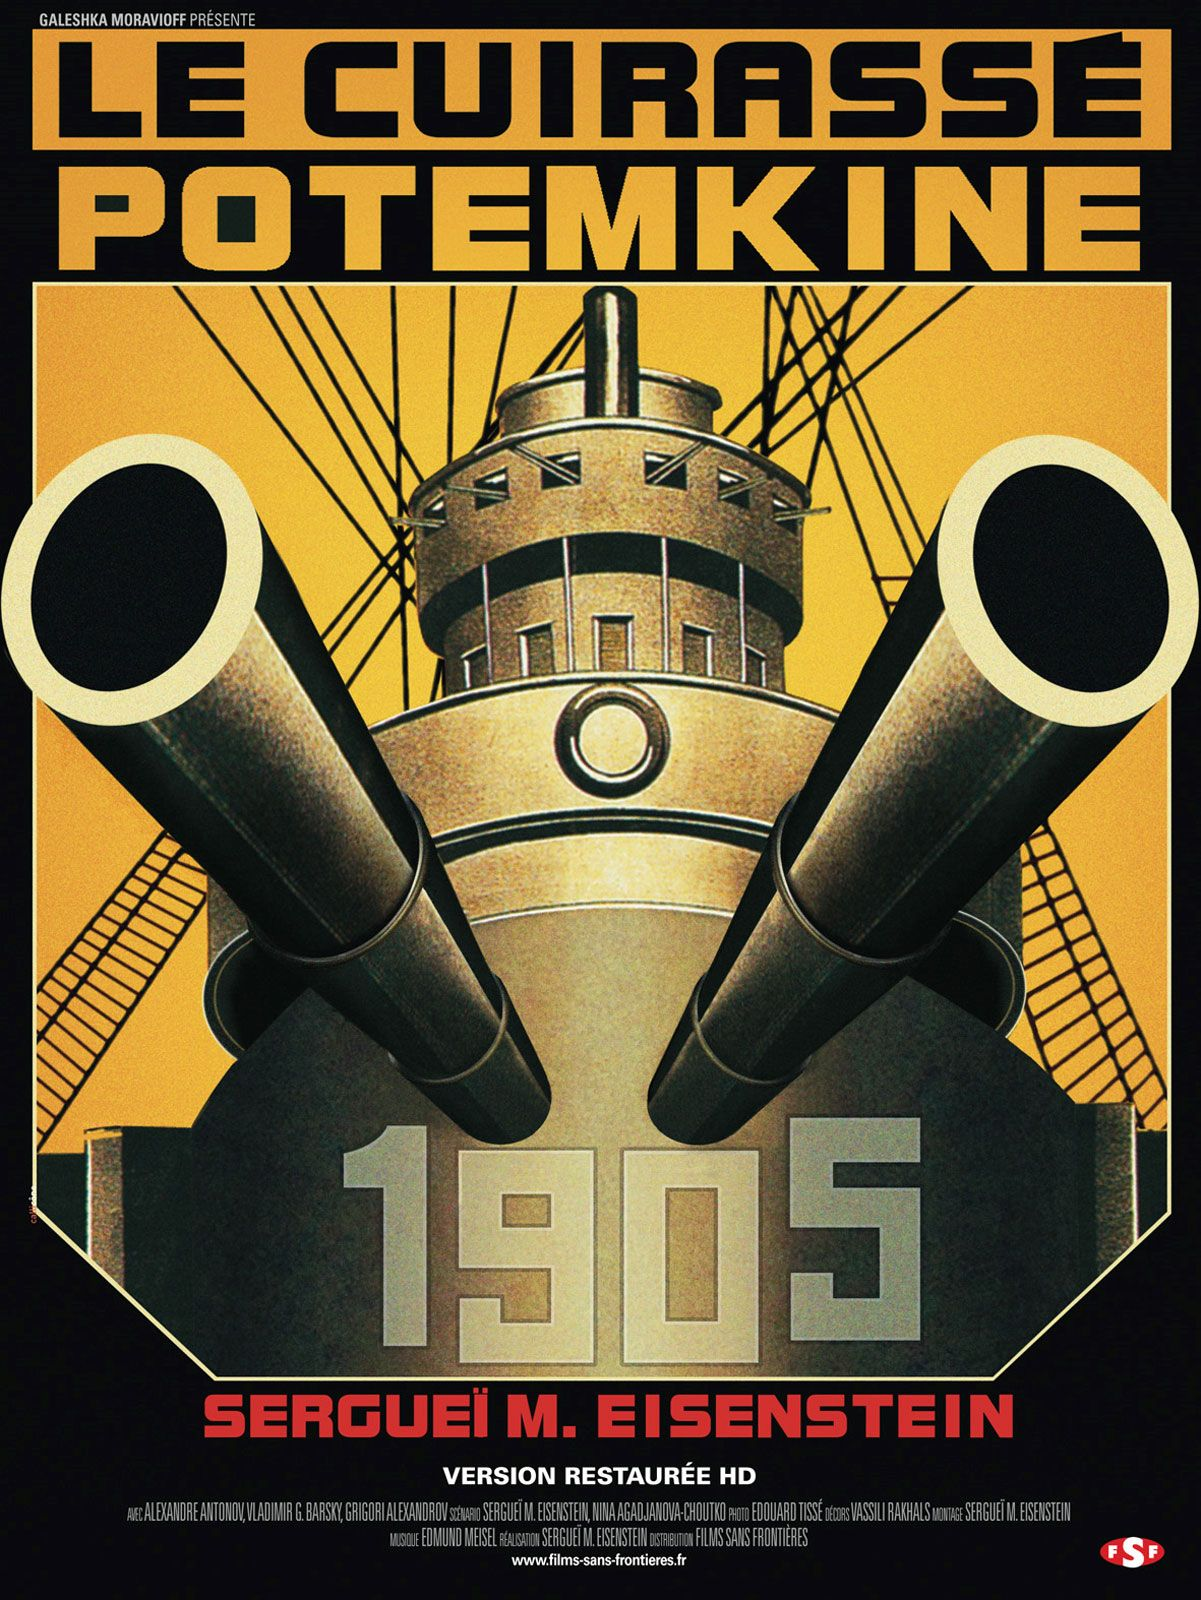 Mutiny on Potemkin 1905 june DIEULOIS